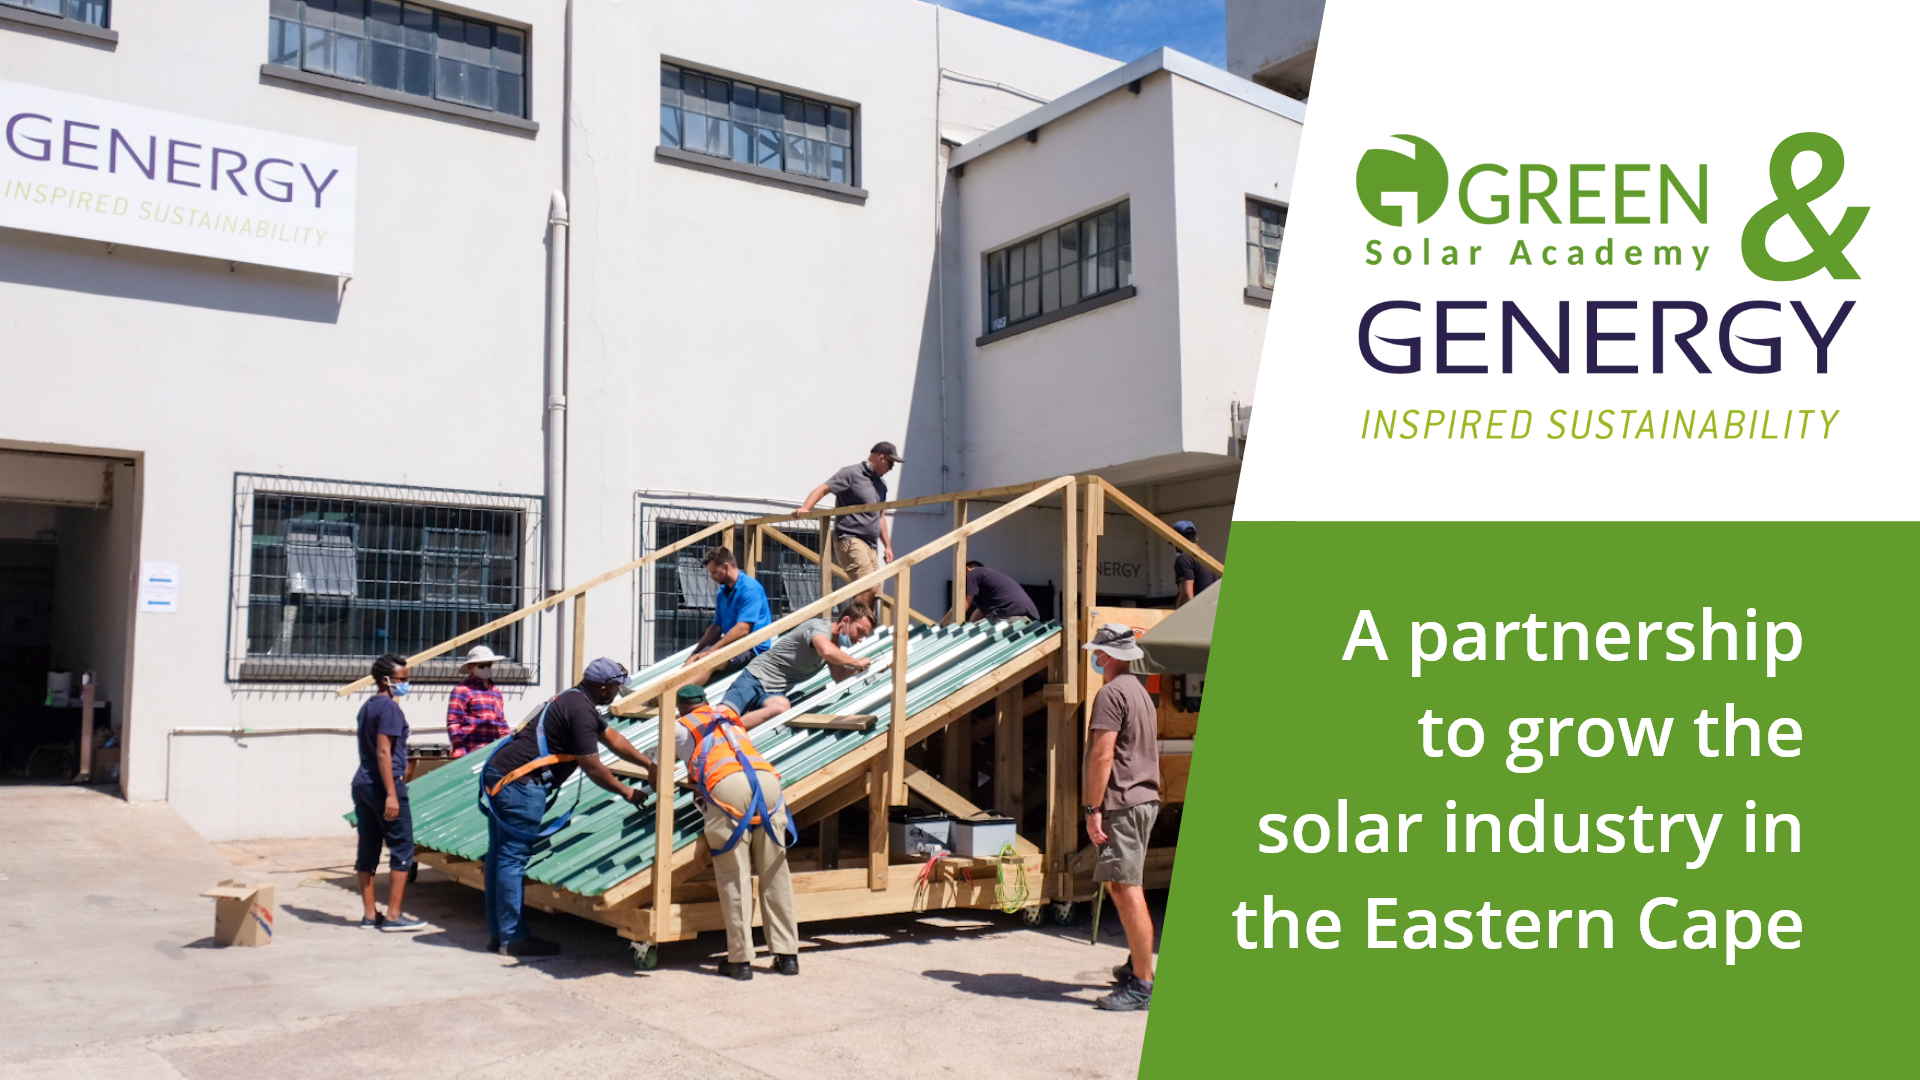 GREEN and Genergy – A partnership for solar growth and empowerment in the Eastern Cape